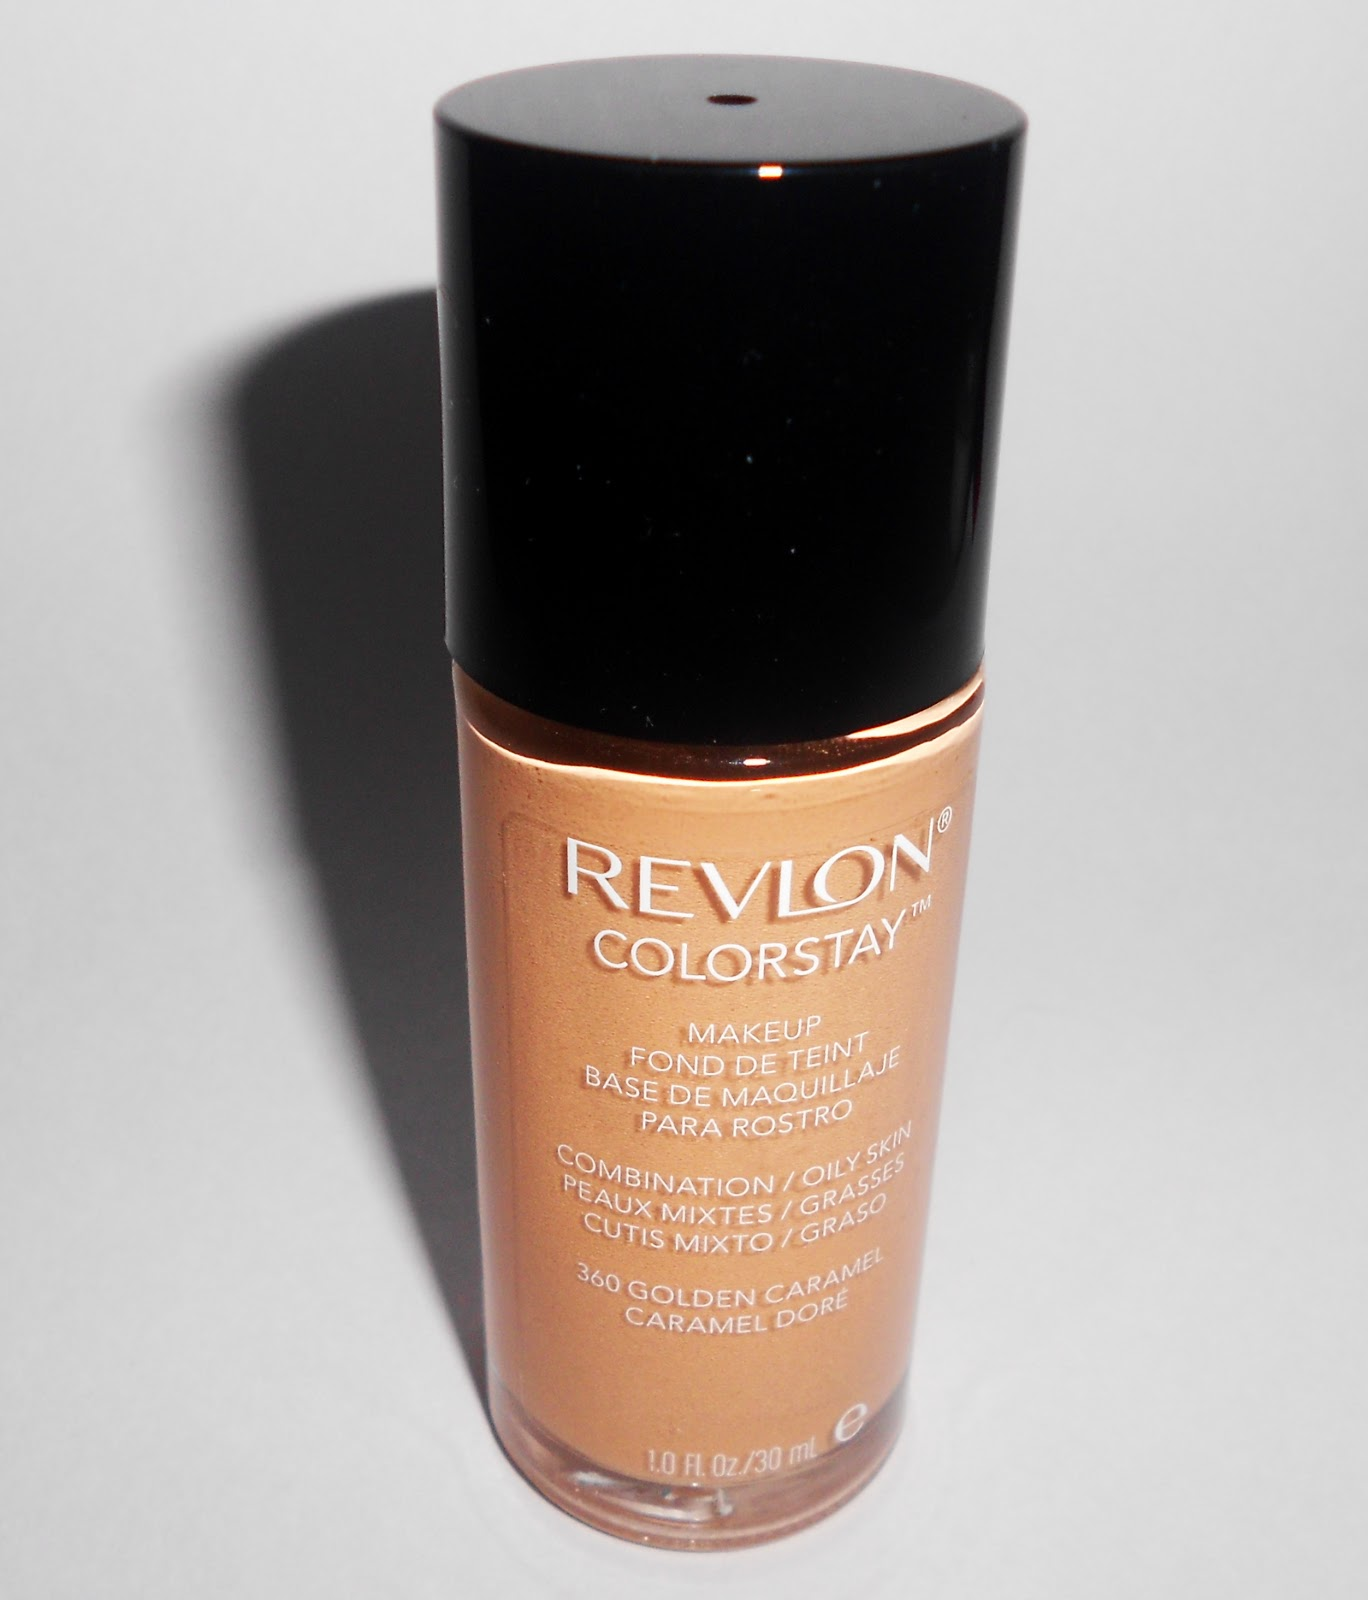 ely.hearts.makeup: Revlon Colorstay Liquid Foundation: Review and Demo